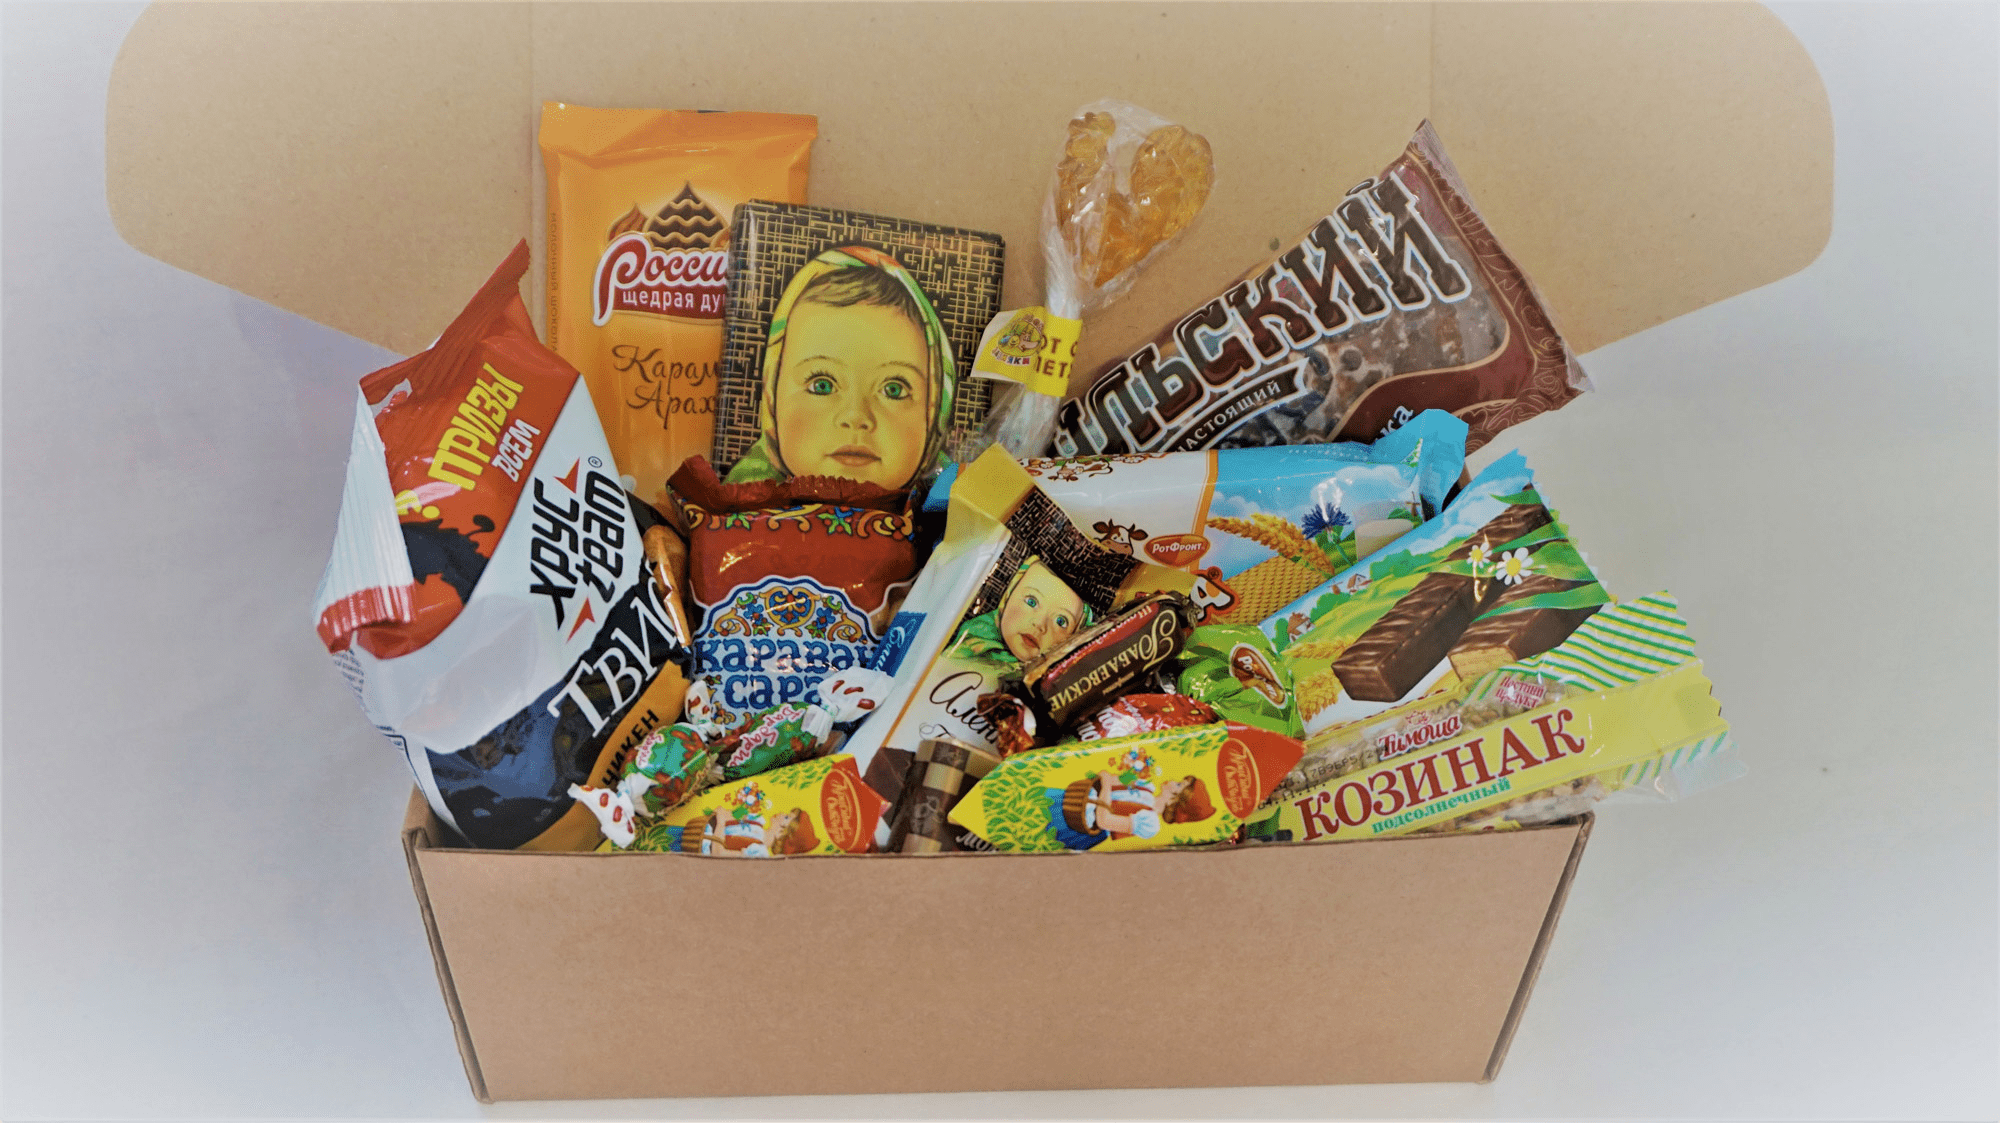 Candy Box Russia 2017 Black Friday Coupon: Save 10% on your first box!